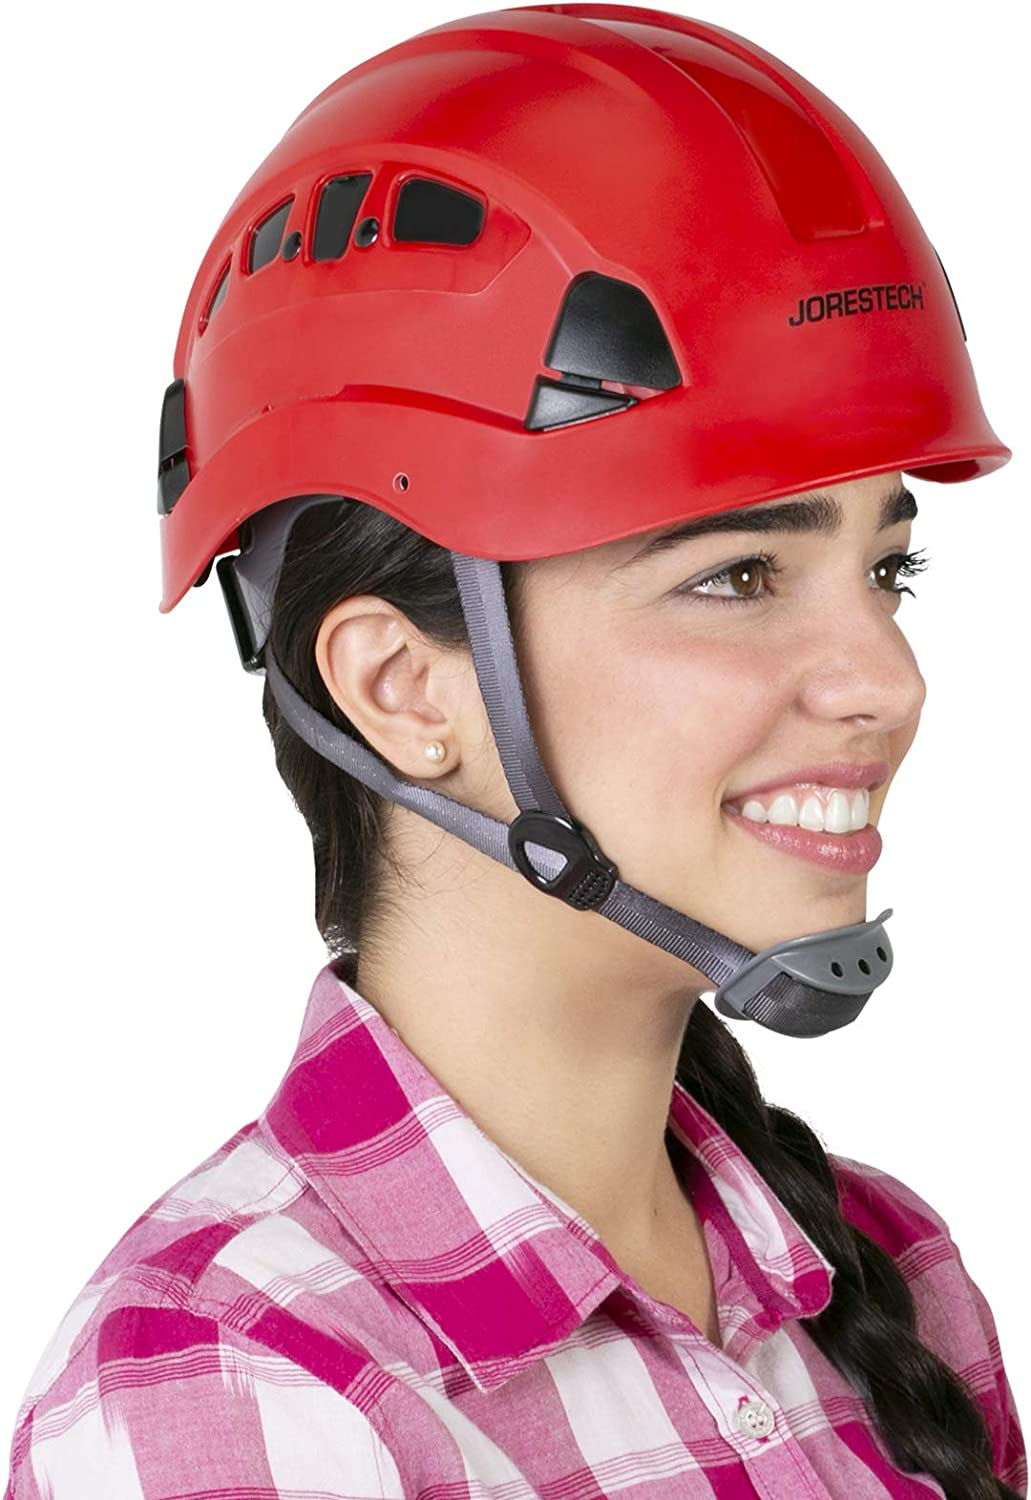 JORESTECH Hard Hat Red ABS Ven Super Ranking integrated 1st place Special SALE held Slotted Work-At-Height Rescue and